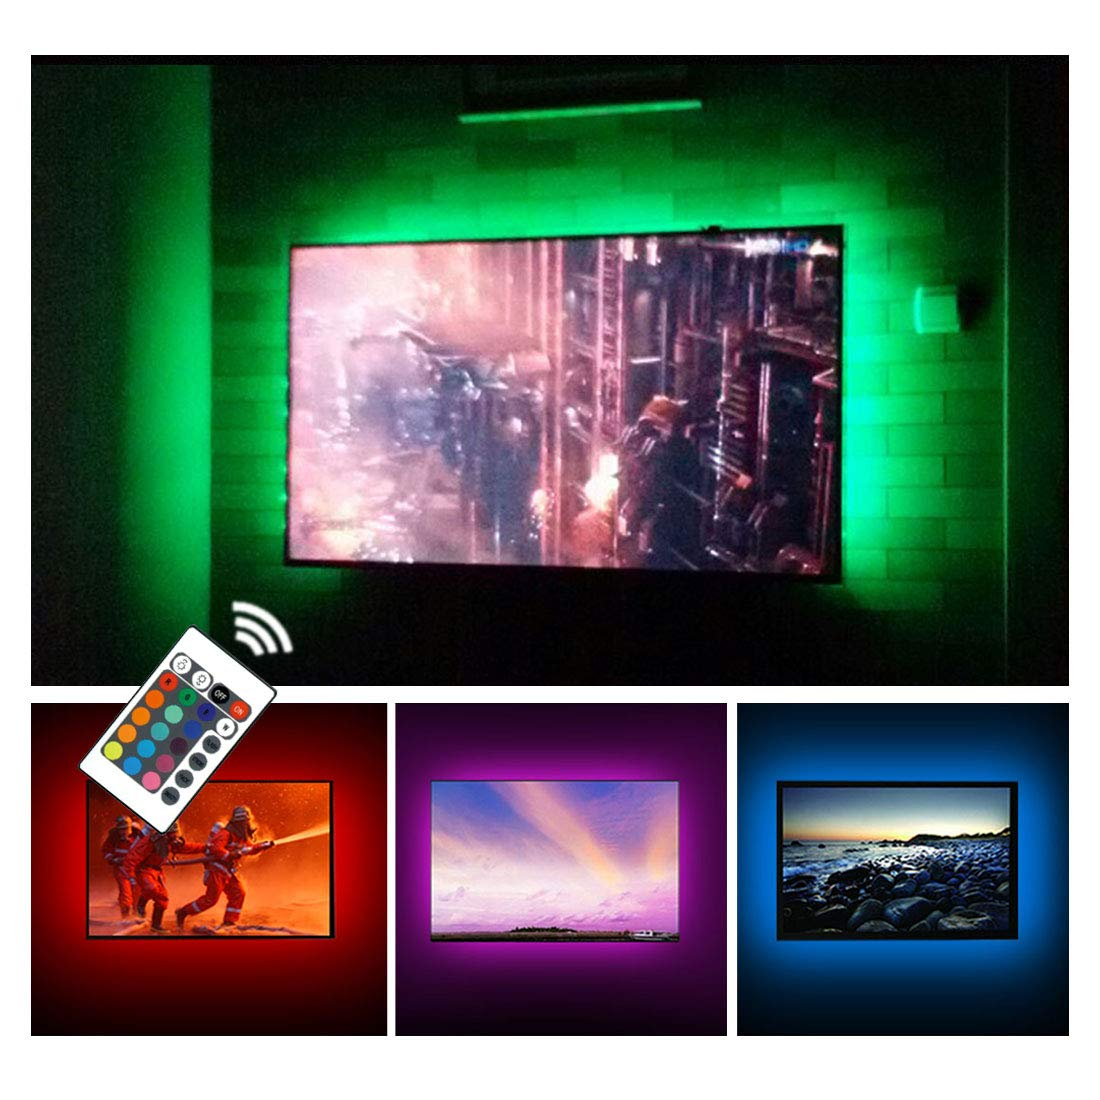 USB TV Backlight LED Bias Lighting Kit For 24'' to 60 Inch Smart TV Monitor HDTV Wall Mount Stand Work Space - TV Background Ambient Mood Lighting Decor